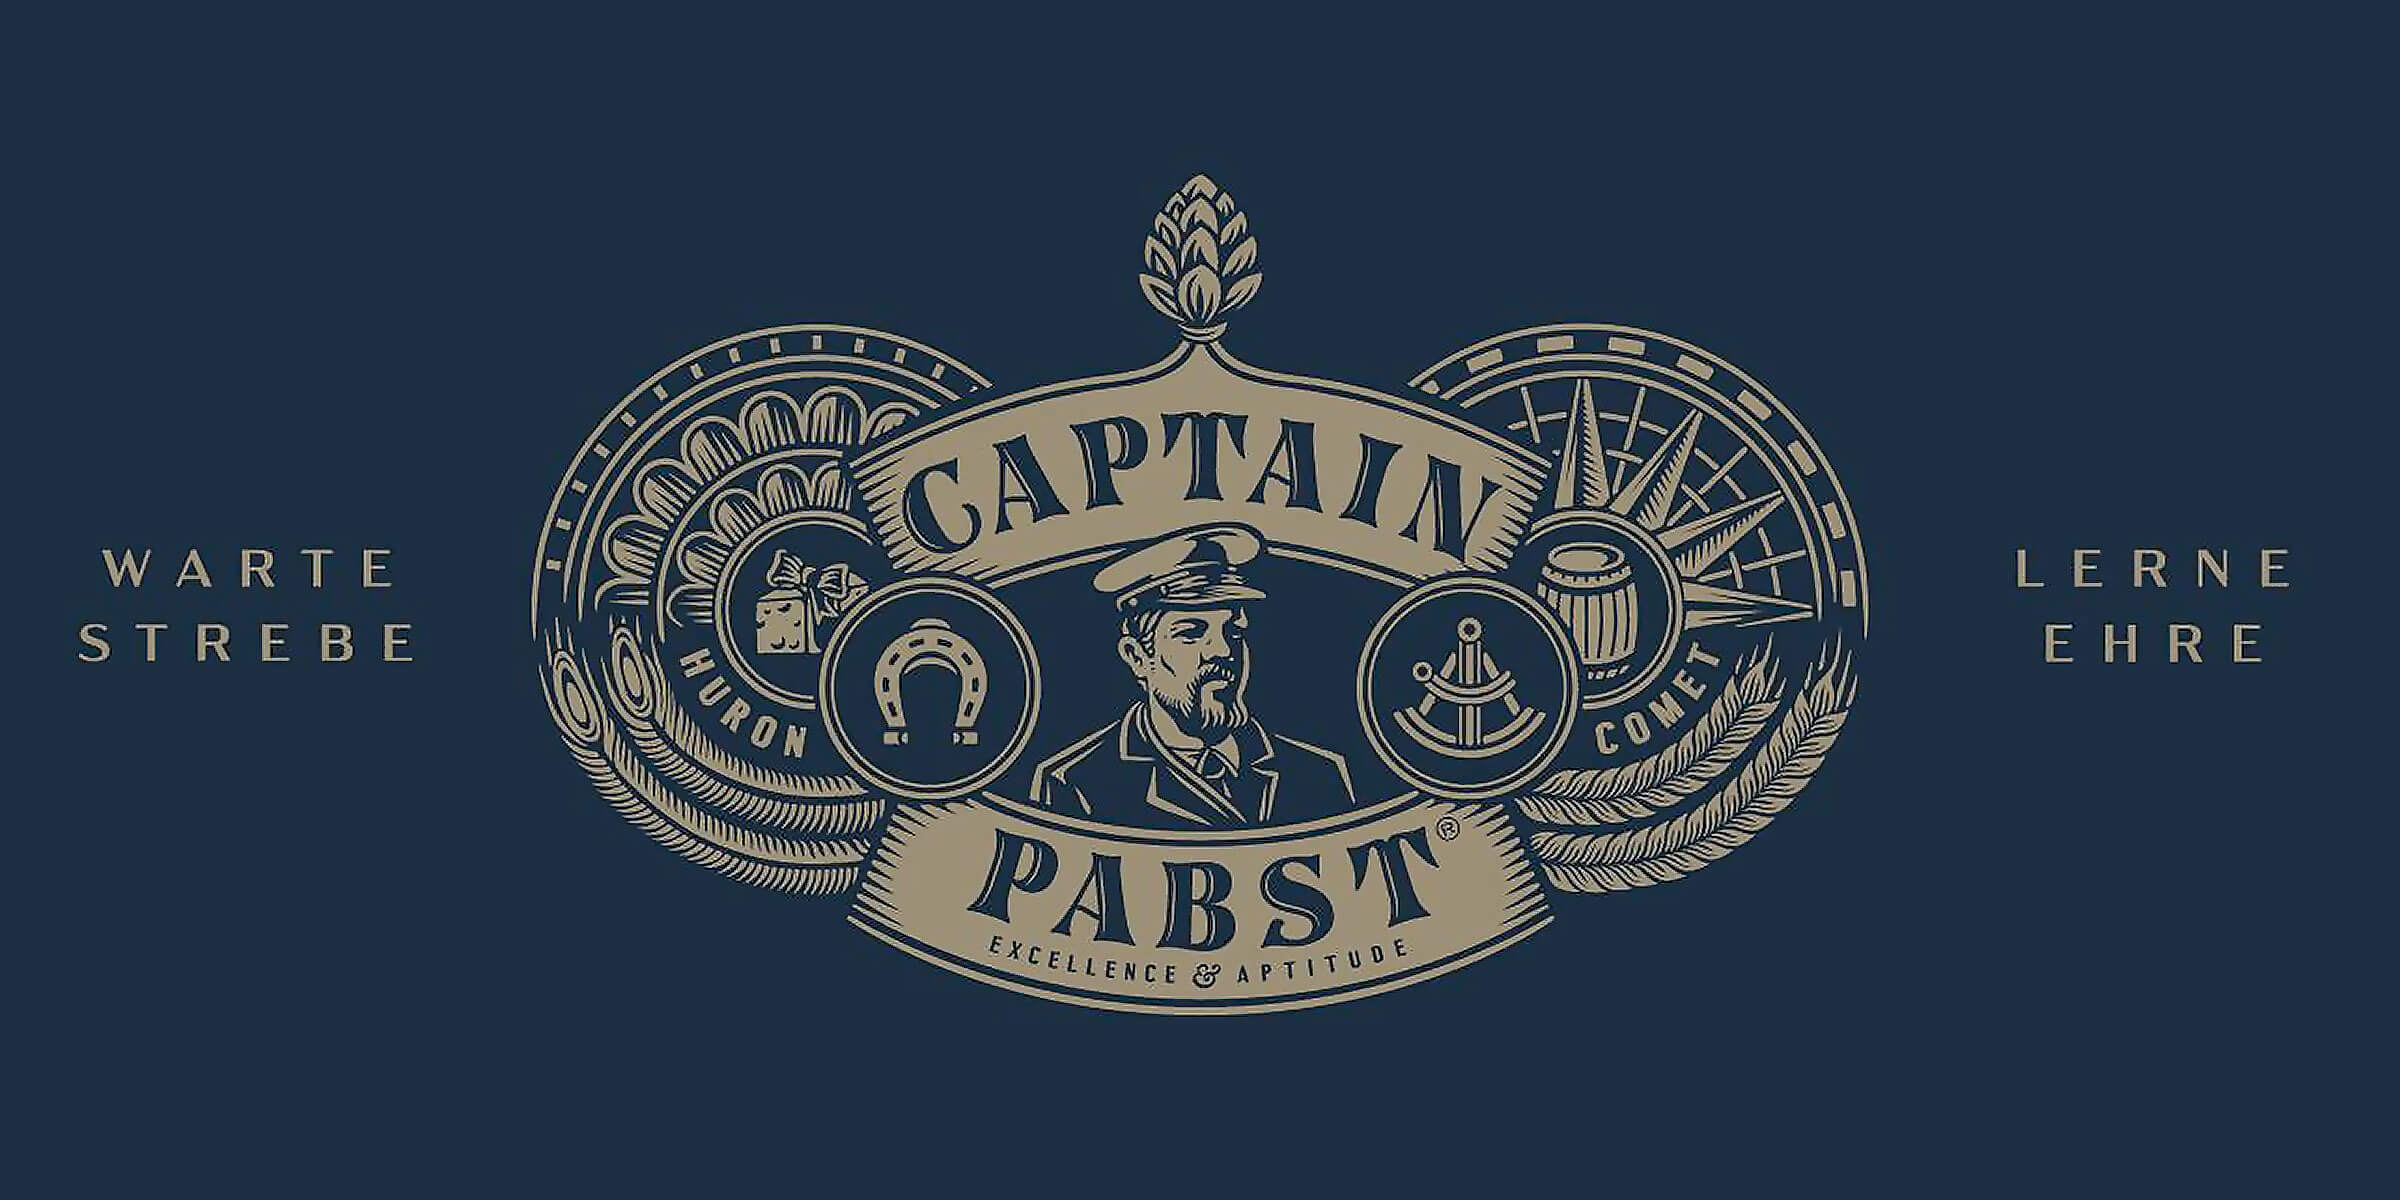 Pabst Brewing Company has lauched Captain Pabst, a craft beer brand outside of the PBR family, and the launch of its flagship offering, Seabird IPA.